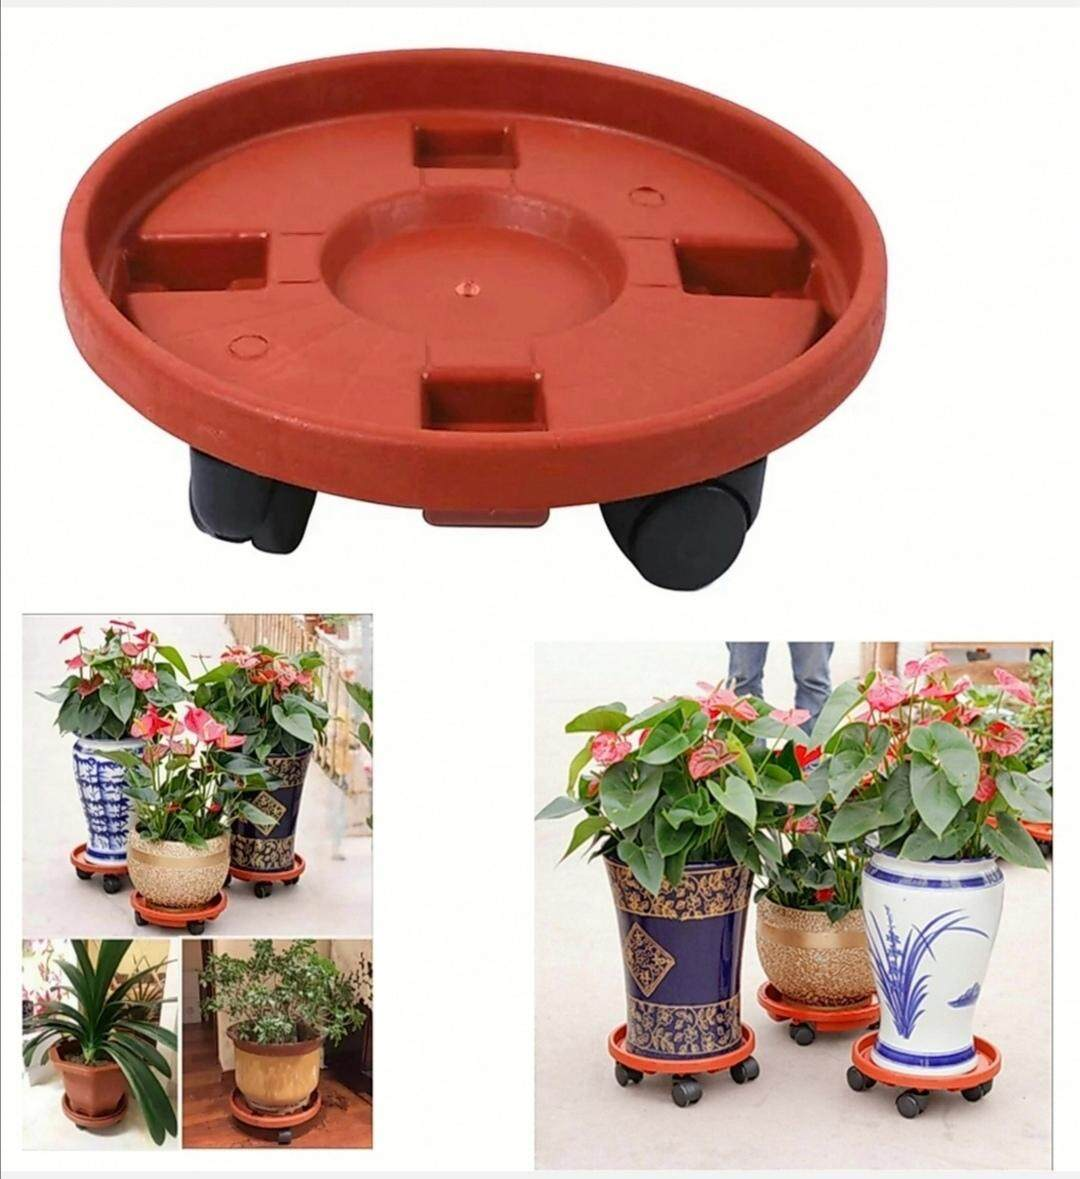 360 Degree Rotatable Resin Flower Potted Plant Caddy Rollers Stand Wheels for Patio Garden Yard Lawn